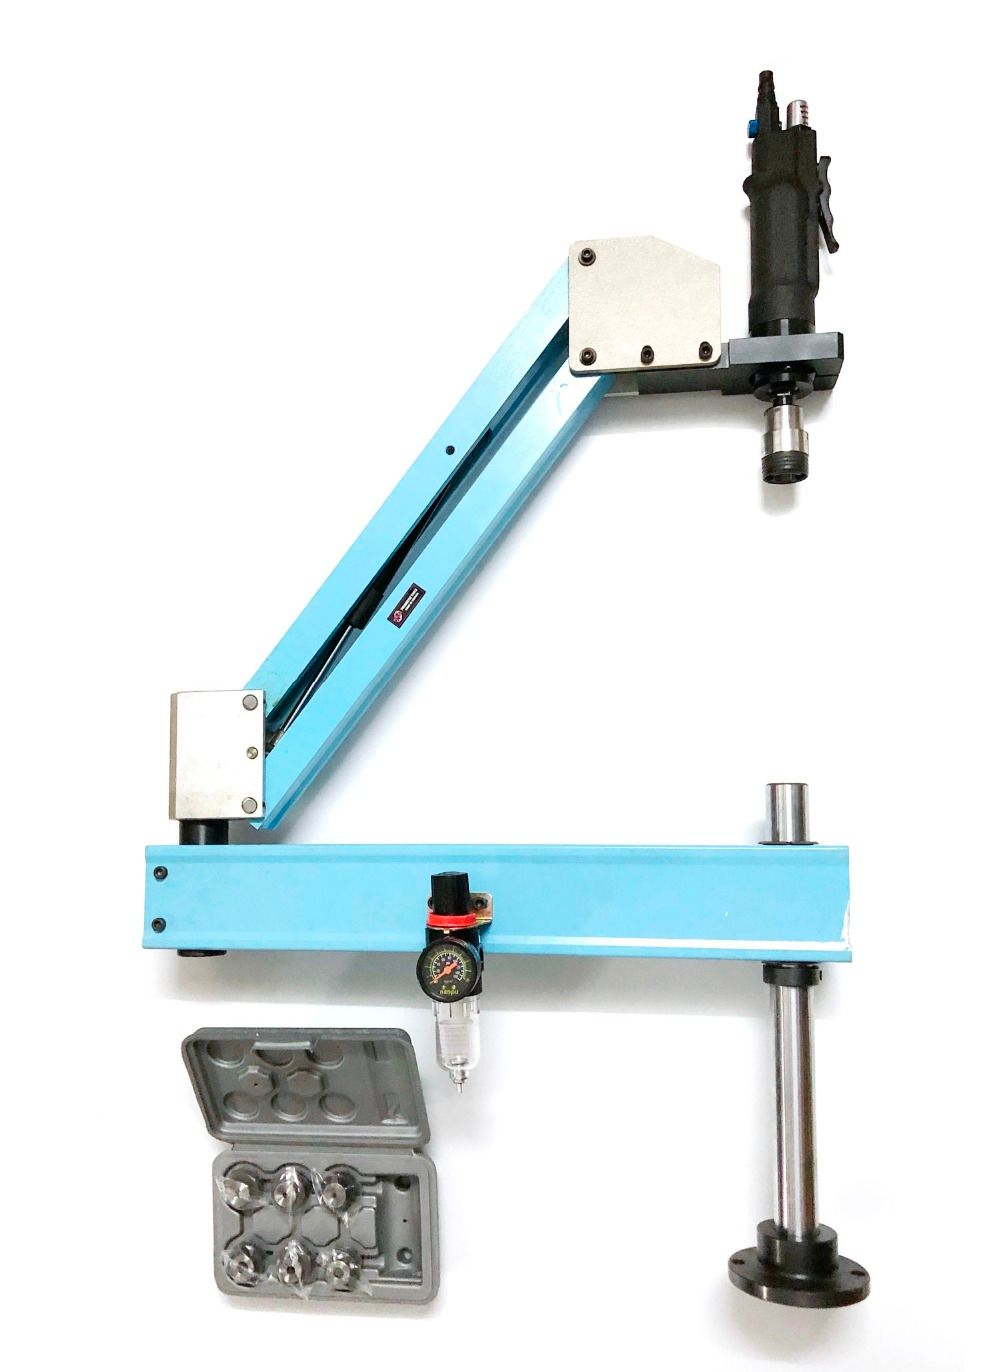 M3-M12 Vertical Type Pneumatic Air Tapping Tool Machine-working Taps Threading Machine Tapping Capacity Pneumatic Tapper Tools